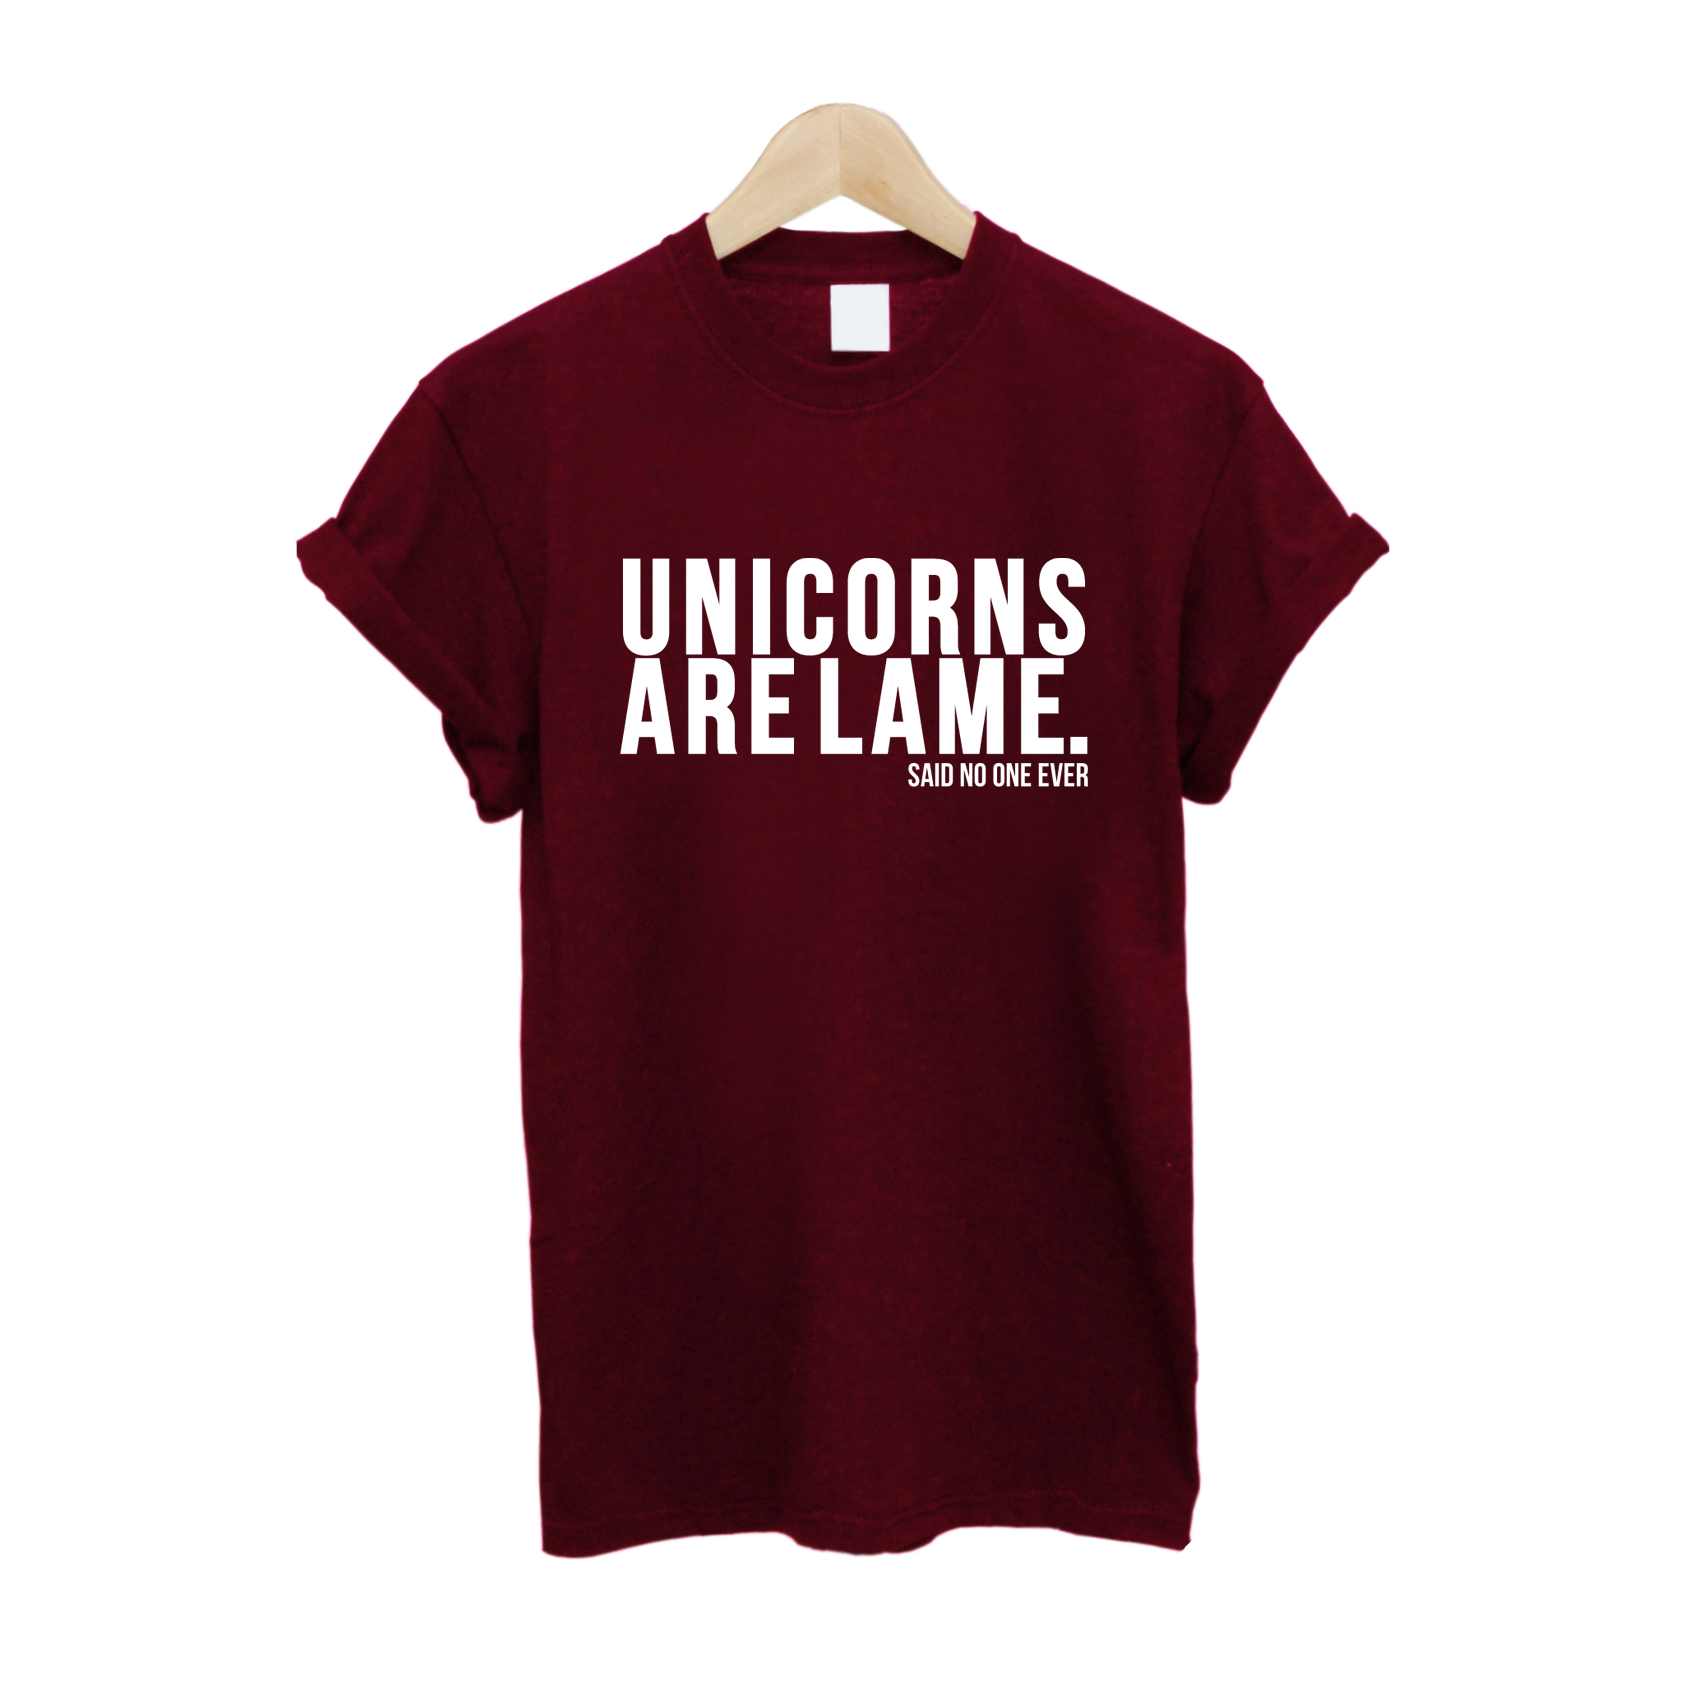 Unicorns Are Lame T Shirt £10   Free UK Delivery   10% OFF